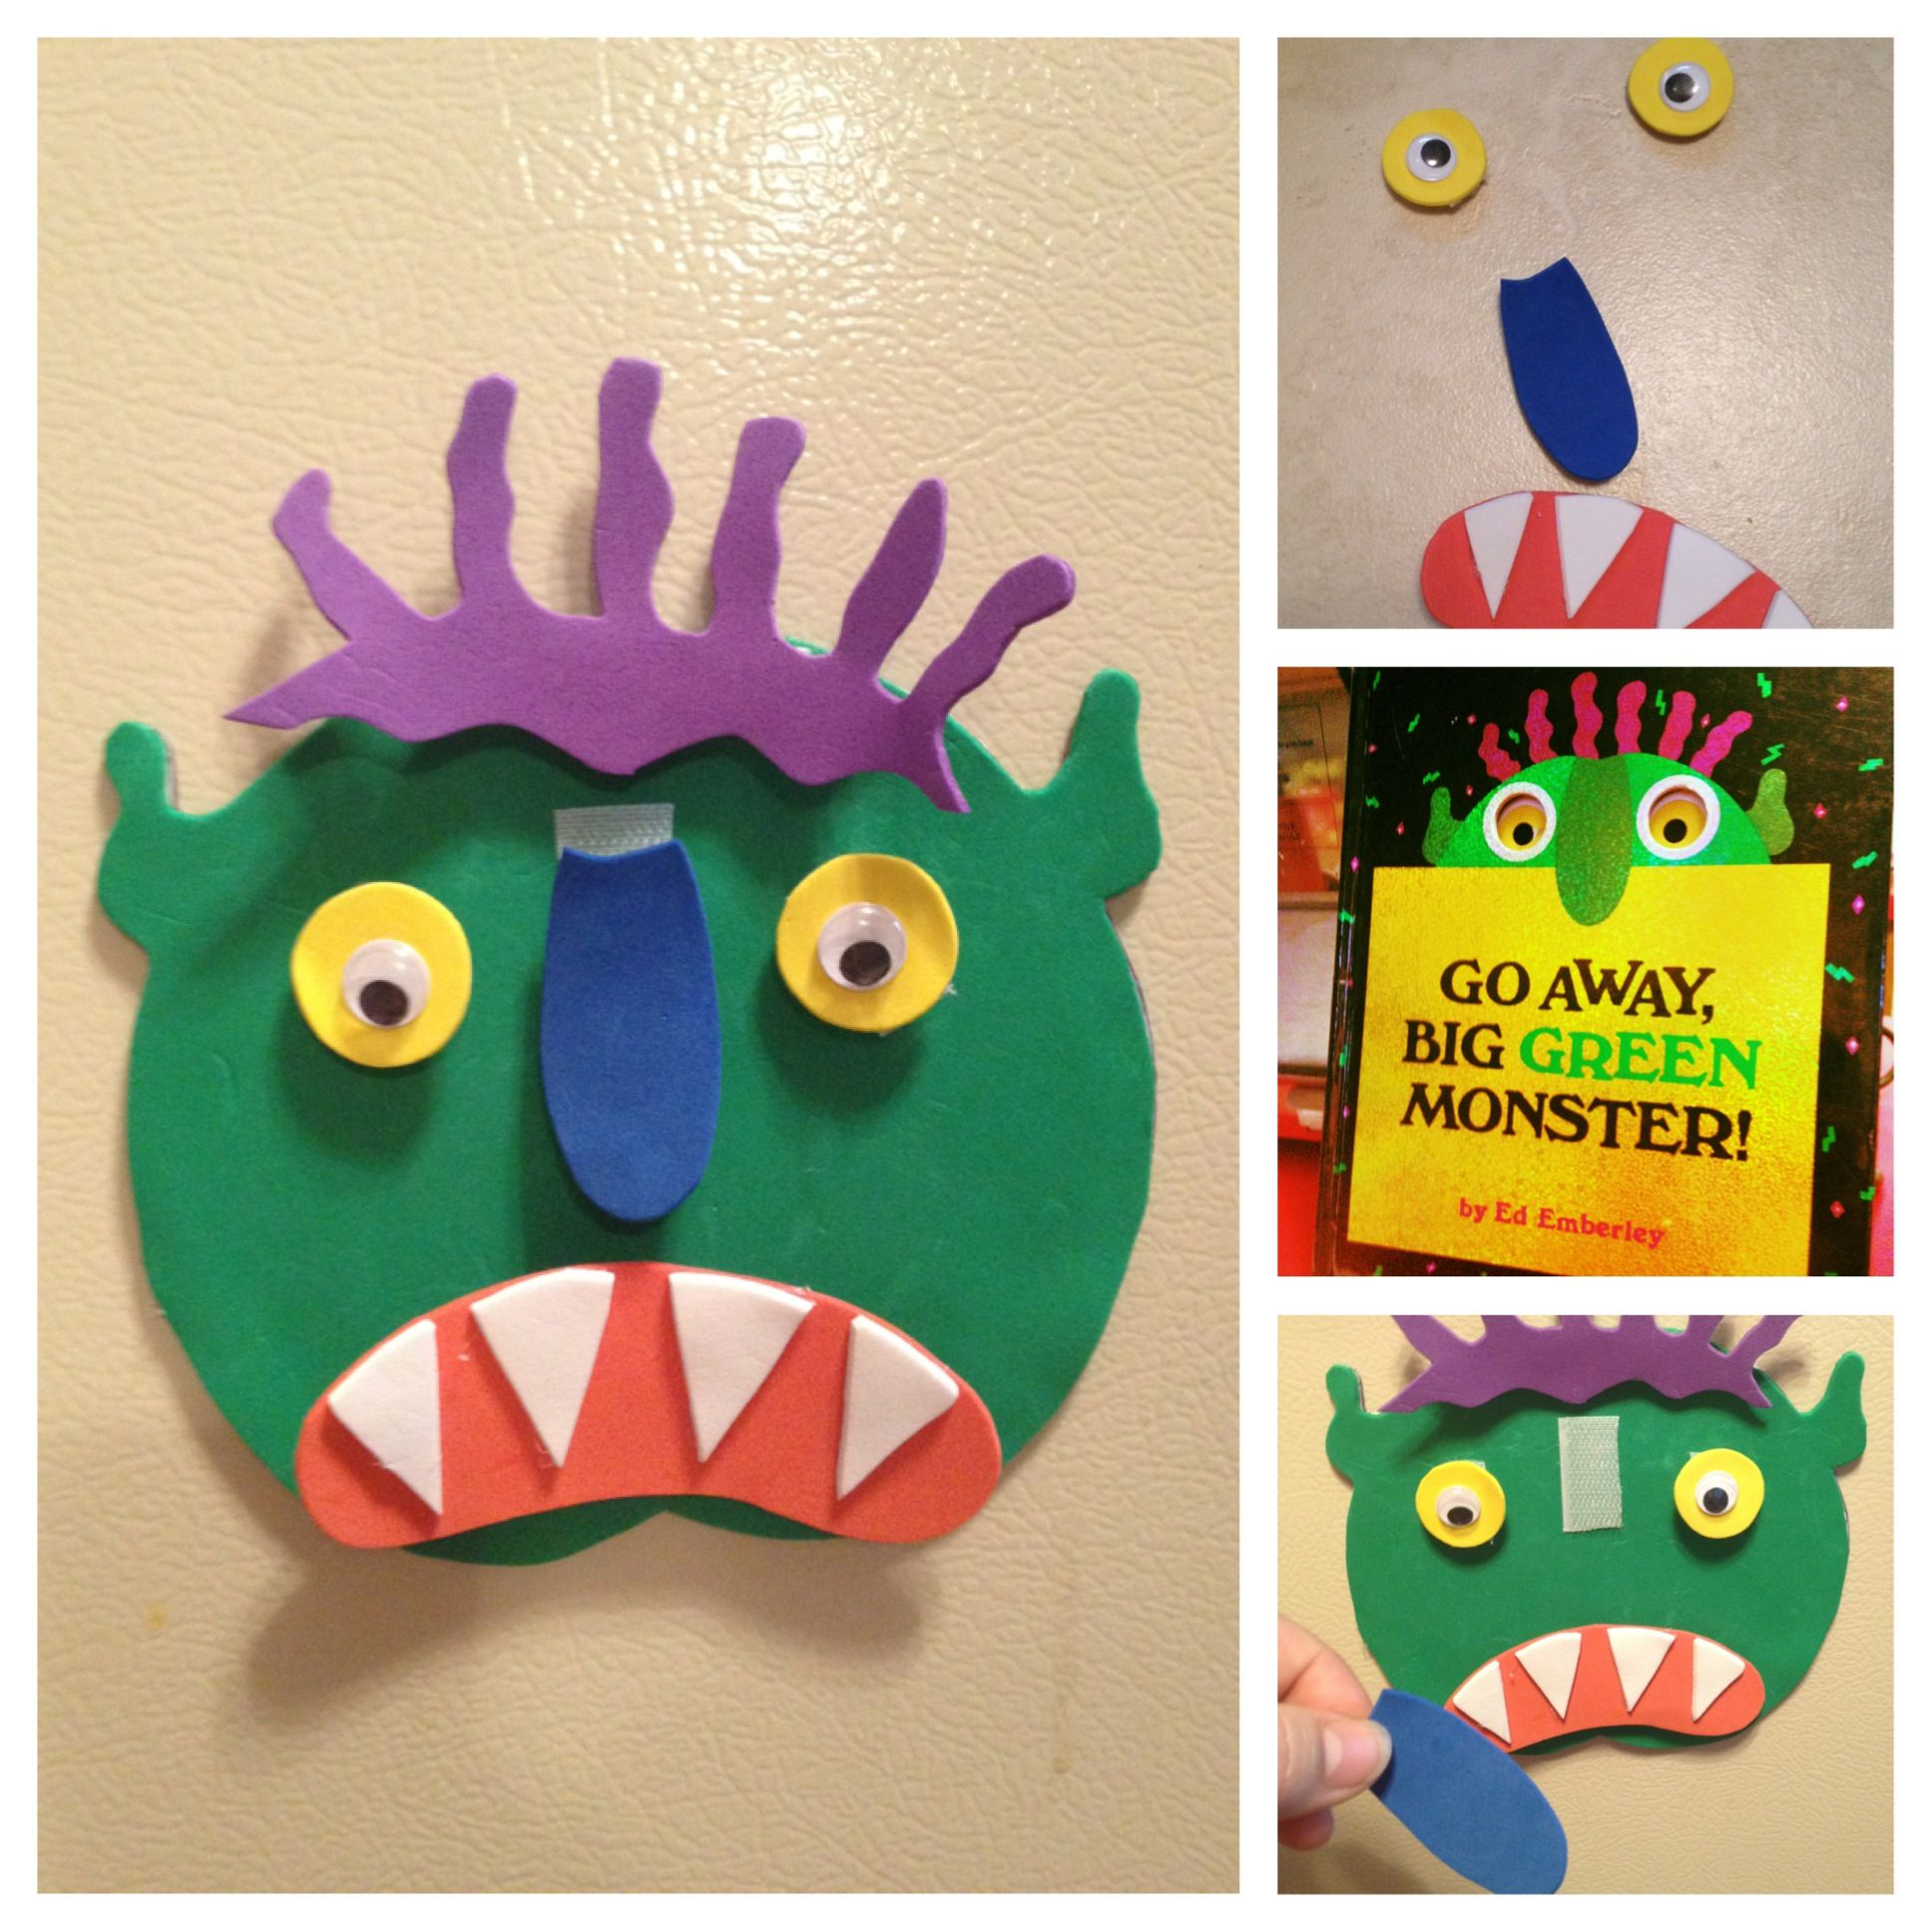 Magnetic Flannel Board For Go Away Big Green Monster Ed Emberley This Is My Son S Favorite B Speech Therapy Book Activities Big Green Monster Classroom Crafts